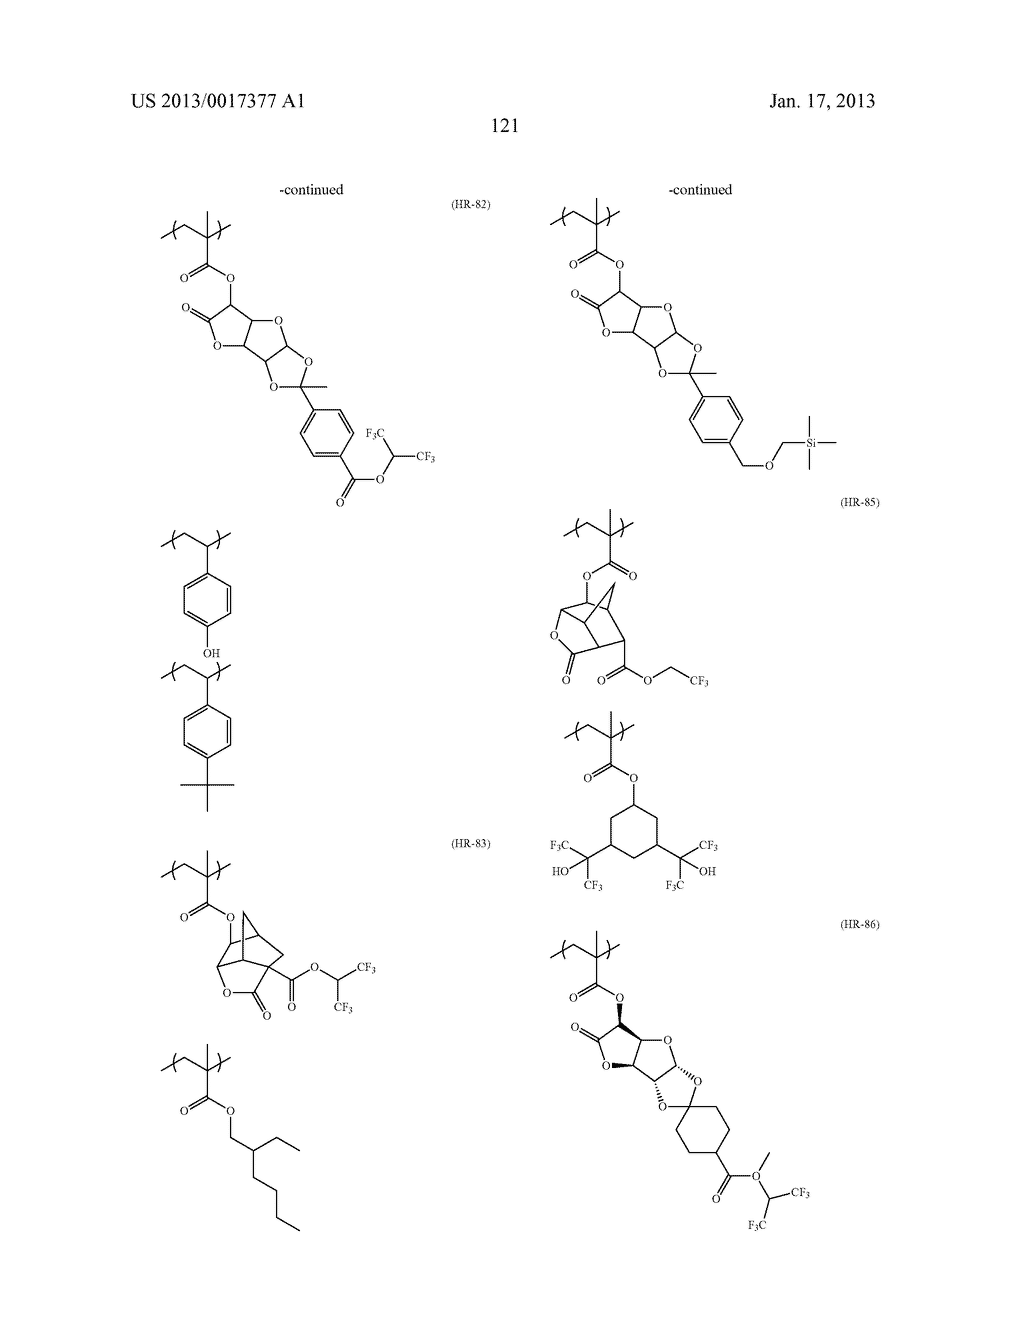 ACTINIC-RAY- OR RADIATION-SENSITIVE RESIN COMPOSITION AND METHOD OF     FORMING PATTERN USING THE SAMEAANM Kataoka; ShoheiAACI ShizuokaAACO JPAAGP Kataoka; Shohei Shizuoka JPAANM Iwato; KaoruAACI ShizuokaAACO JPAAGP Iwato; Kaoru Shizuoka JPAANM Kamimura; SouAACI ShizuokaAACO JPAAGP Kamimura; Sou Shizuoka JPAANM Tsuchihashi; ToruAACI ShizuokaAACO JPAAGP Tsuchihashi; Toru Shizuoka JPAANM Enomoto; YuichiroAACI ShizuokaAACO JPAAGP Enomoto; Yuichiro Shizuoka JPAANM Fujii; KanaAACI ShizuokaAACO JPAAGP Fujii; Kana Shizuoka JPAANM Mizutani; KazuyoshiAACI ShizuokaAACO JPAAGP Mizutani; Kazuyoshi Shizuoka JPAANM Tarutani; ShinjiAACI ShizuokaAACO JPAAGP Tarutani; Shinji Shizuoka JPAANM Kato; KeitaAACI ShizuokaAACO JPAAGP Kato; Keita Shizuoka JP - diagram, schematic, and image 122